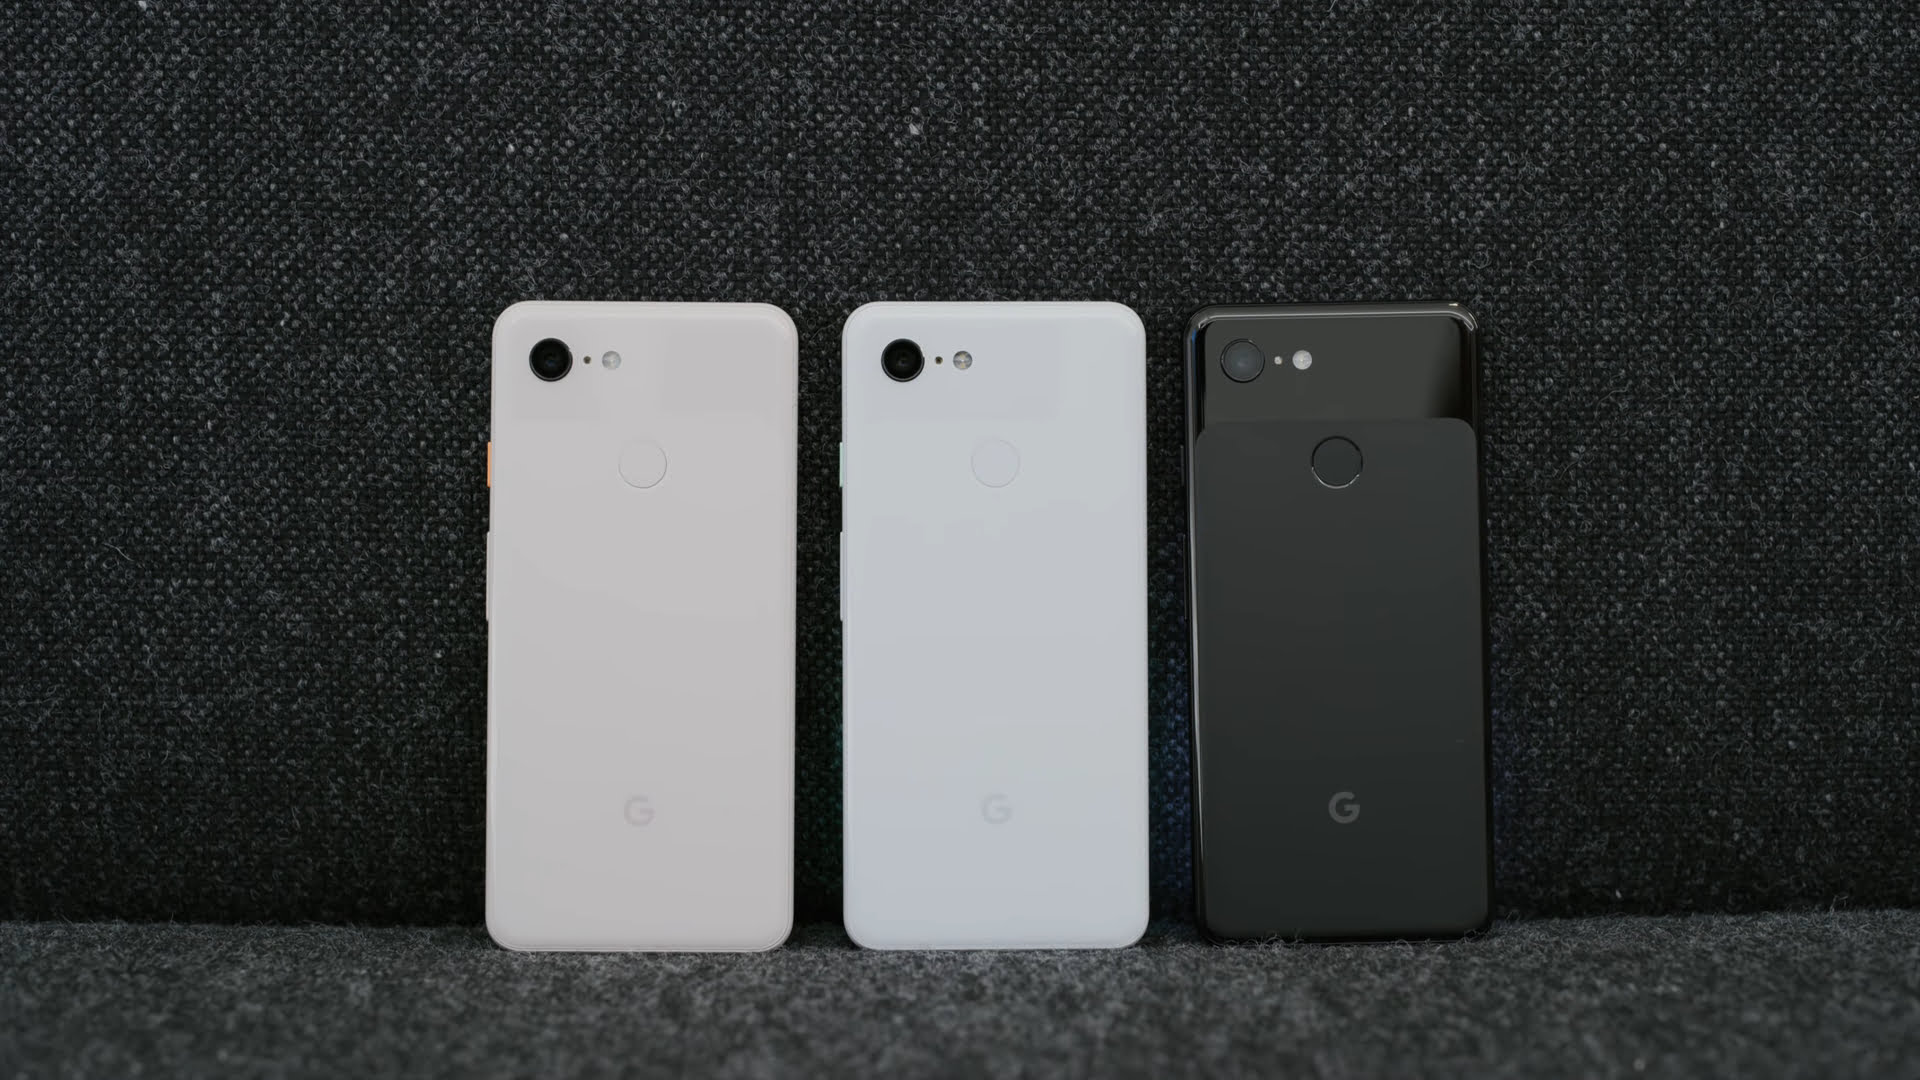 Google Pixel 3, Pixel 3 XL - Specifications and everything you should know